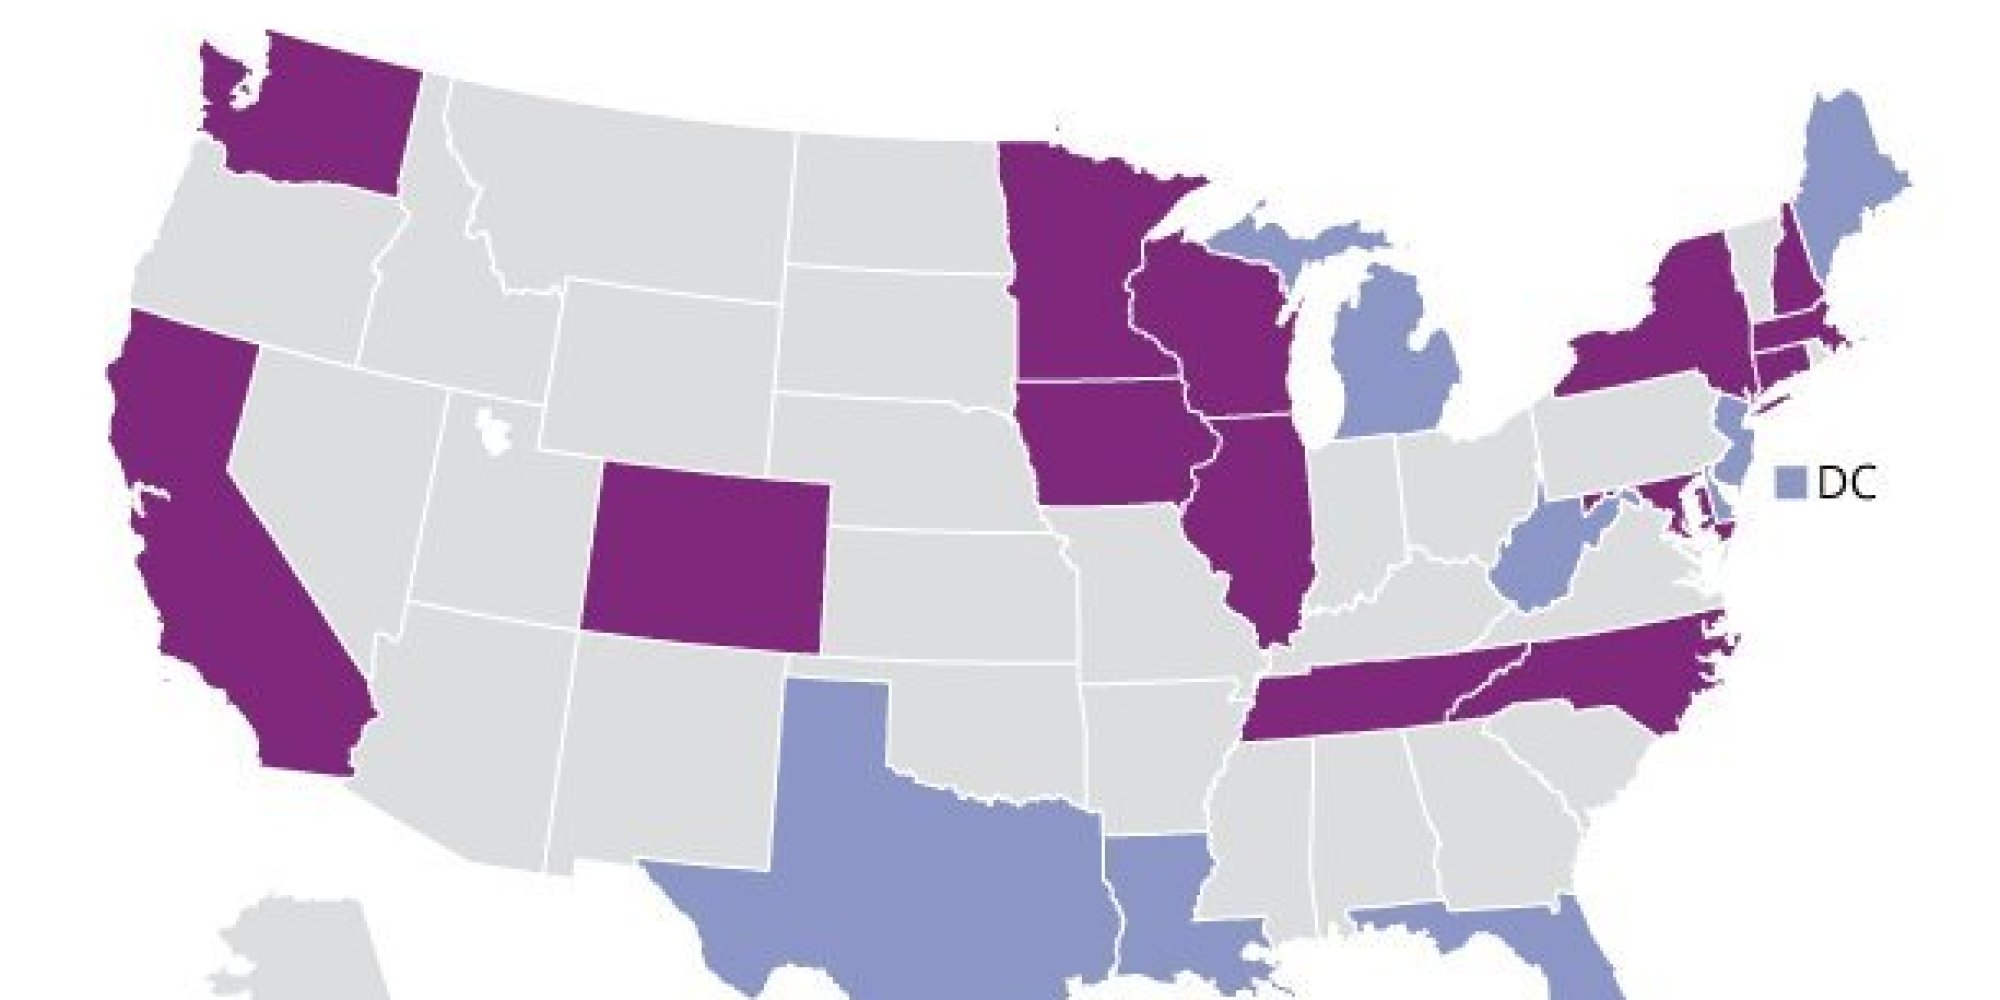 These Abusers Arent Allowed To Own Guns So Why Arent States - Us gun murders map